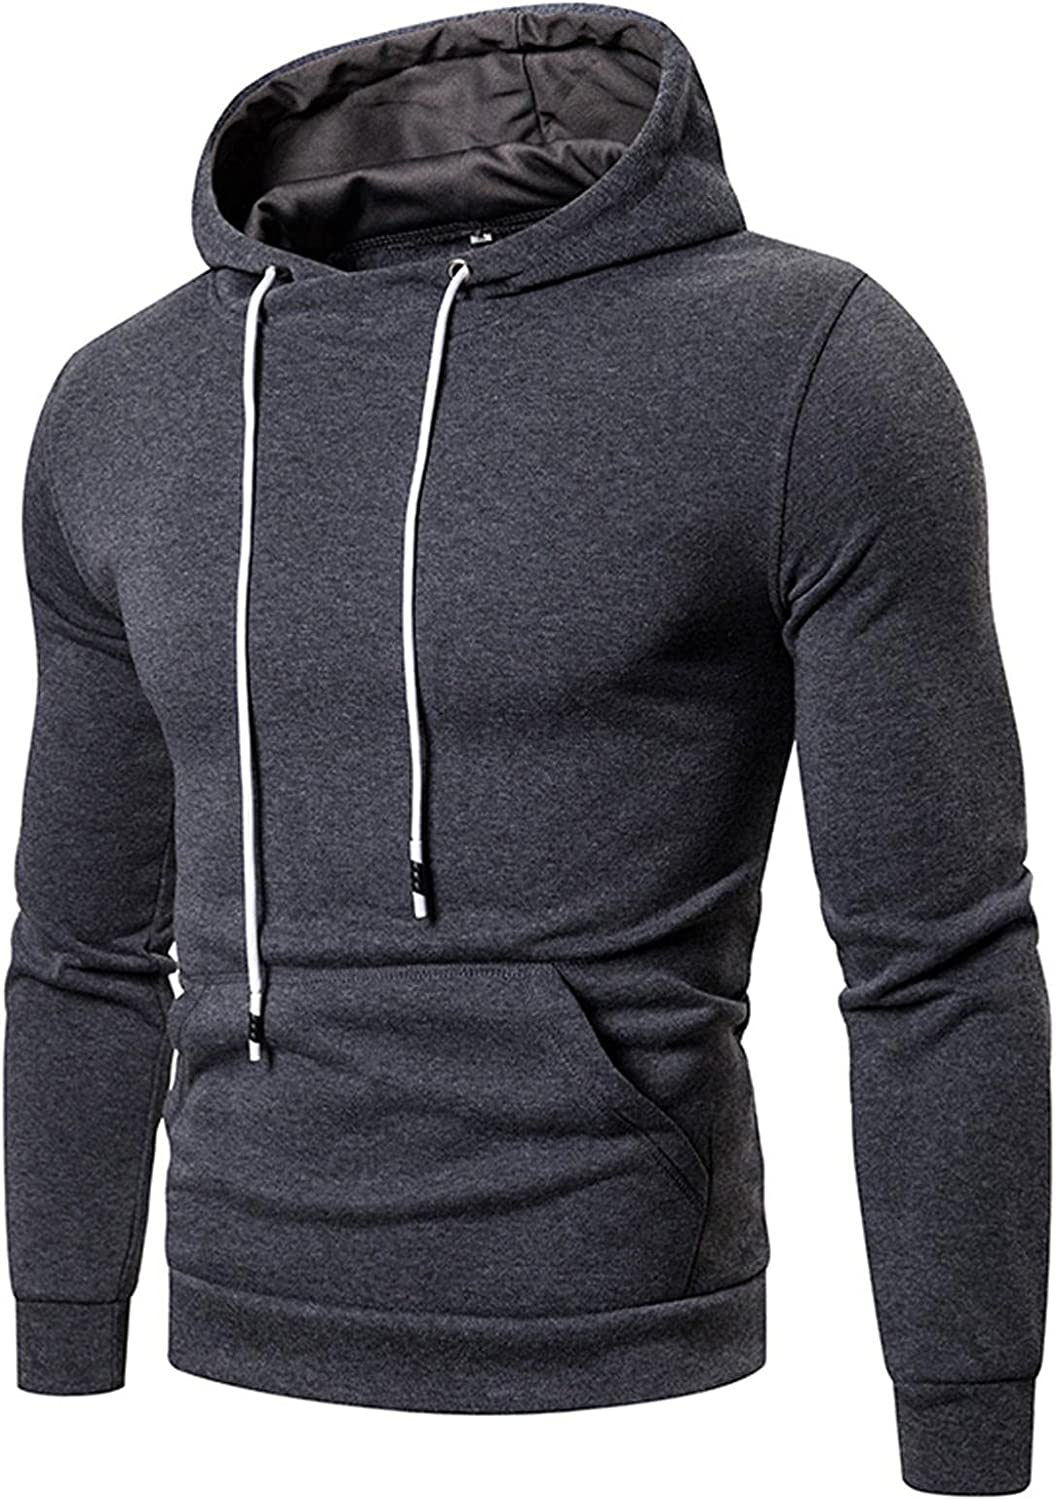 Men Hooded Sweatshirts Casual Sports Solid Blouses Hoodies Pullover Yoga Workout Long Sleeve Tops Men's Sweaters